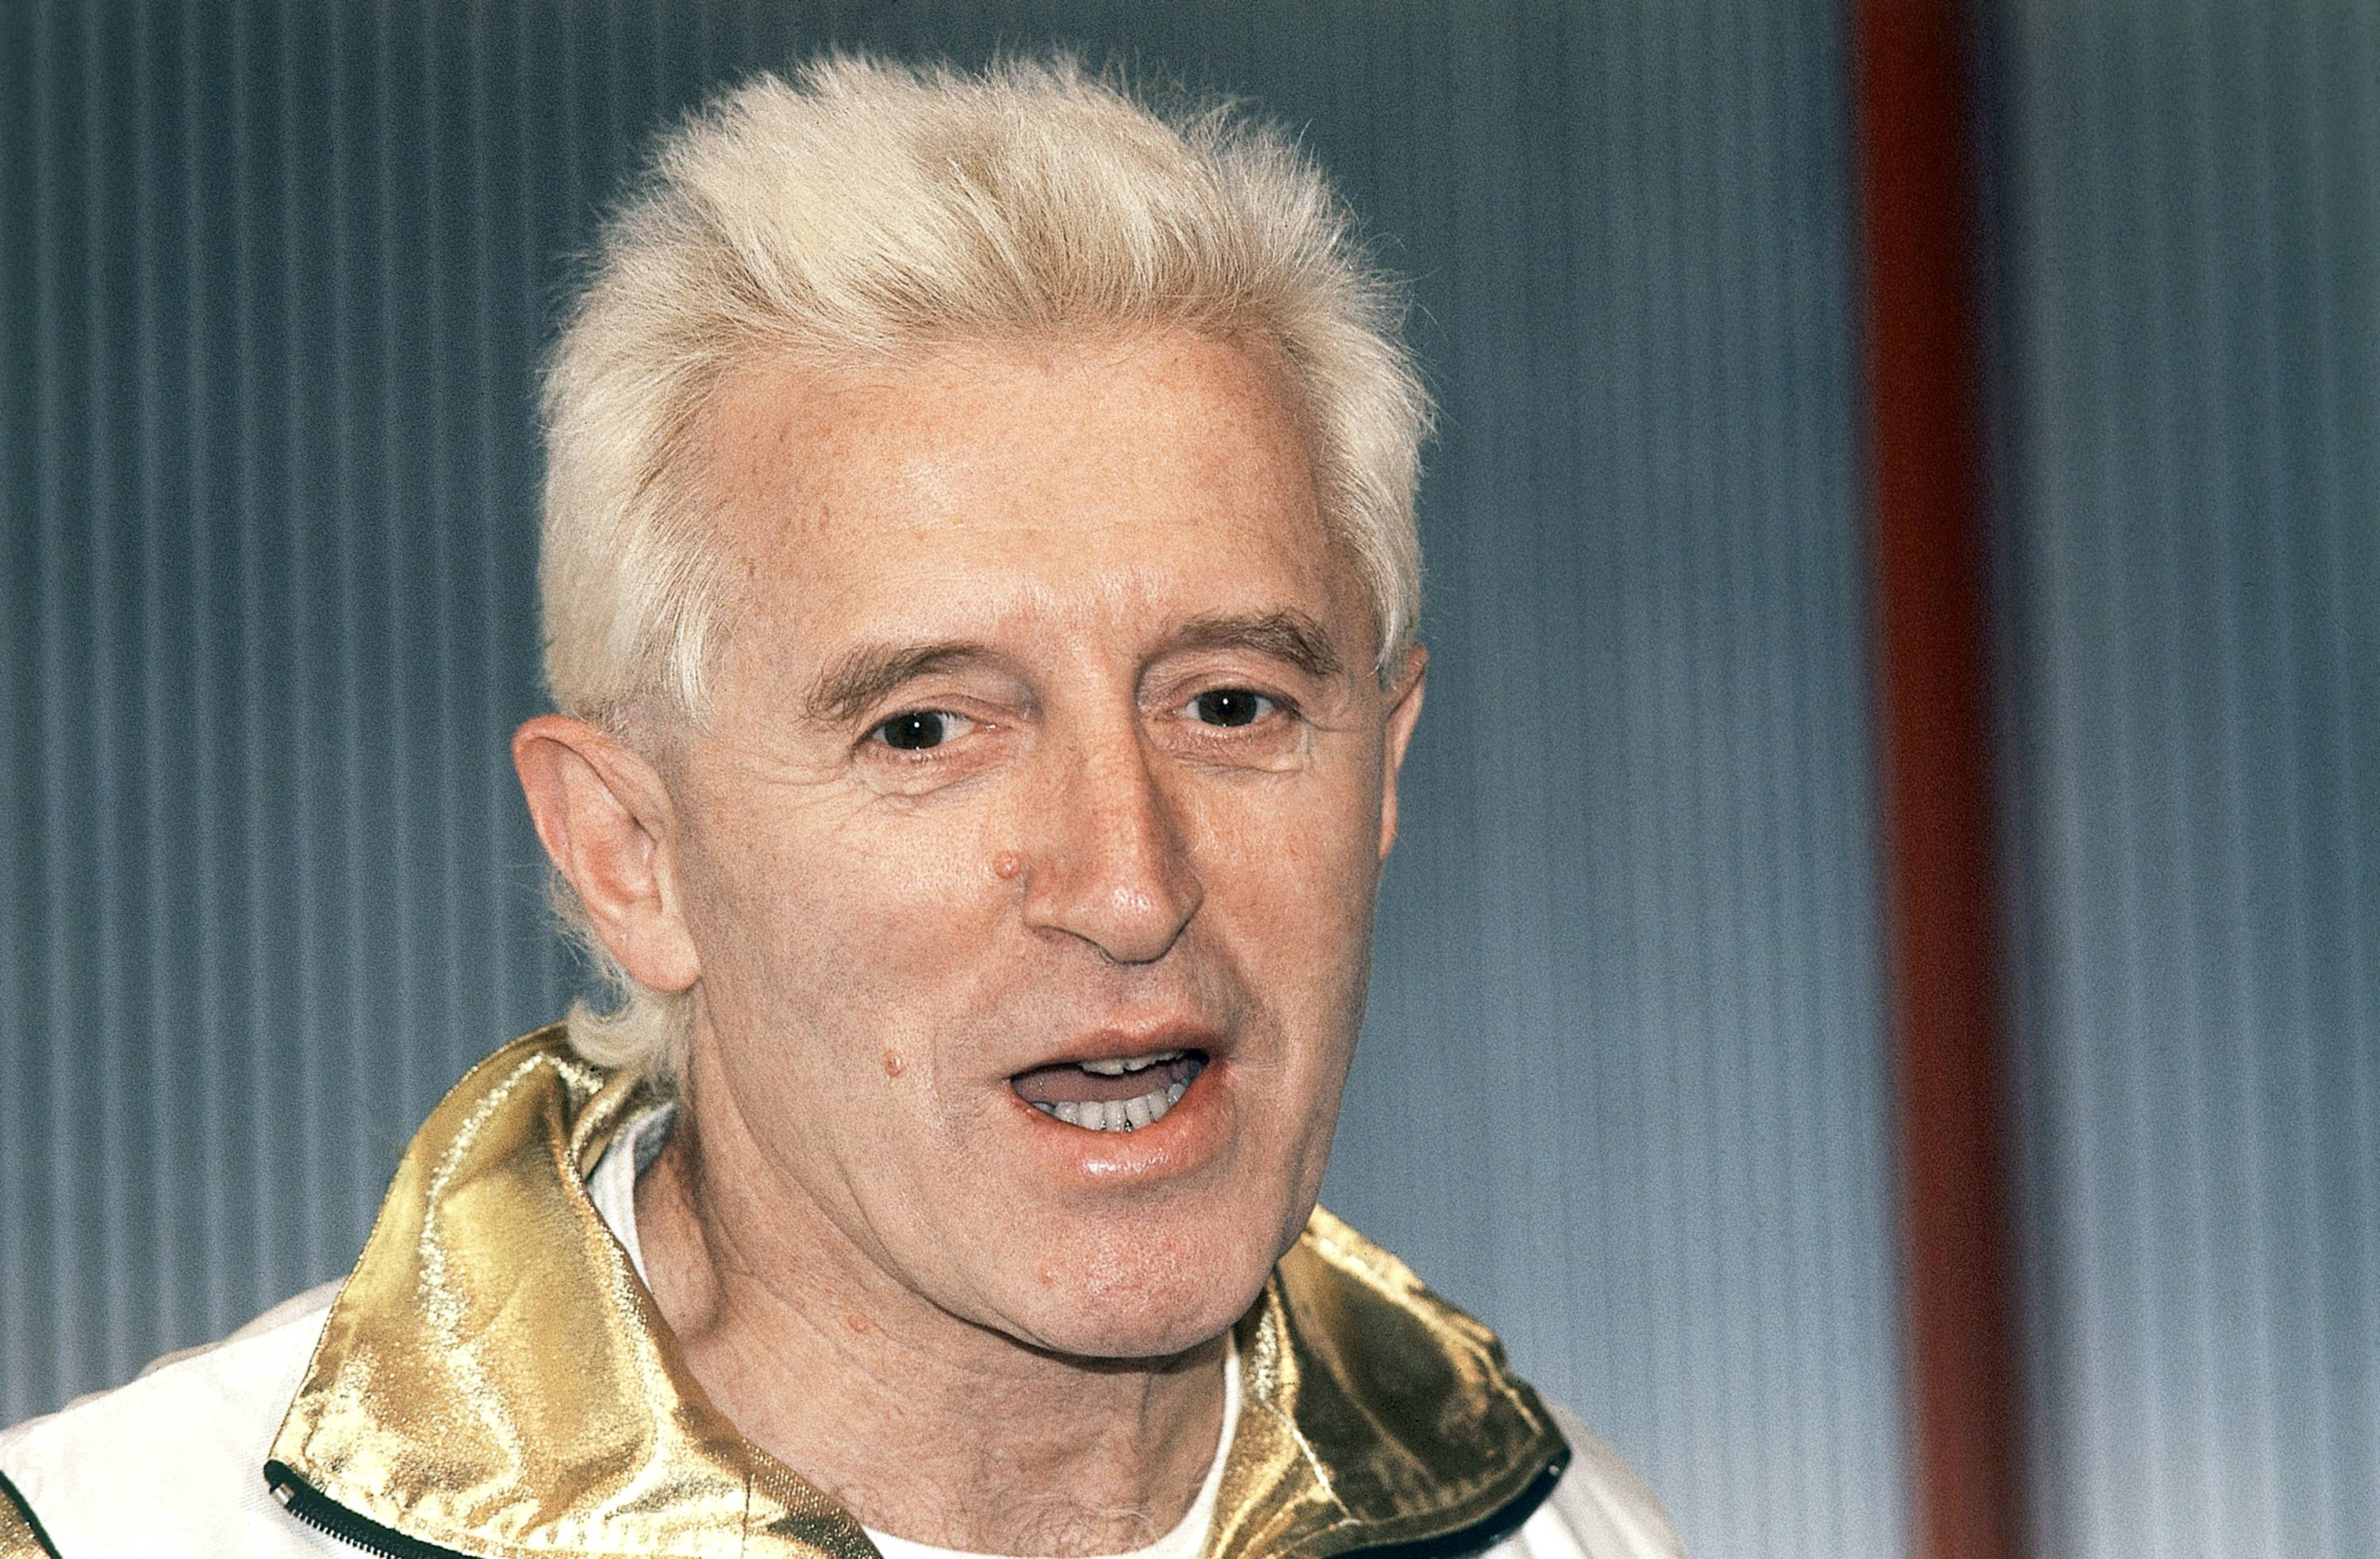 Disc jockey and presenter on Britain's Radio 1, Jimmy Savile, is pictured at Madame Tussauds museum in London, England.